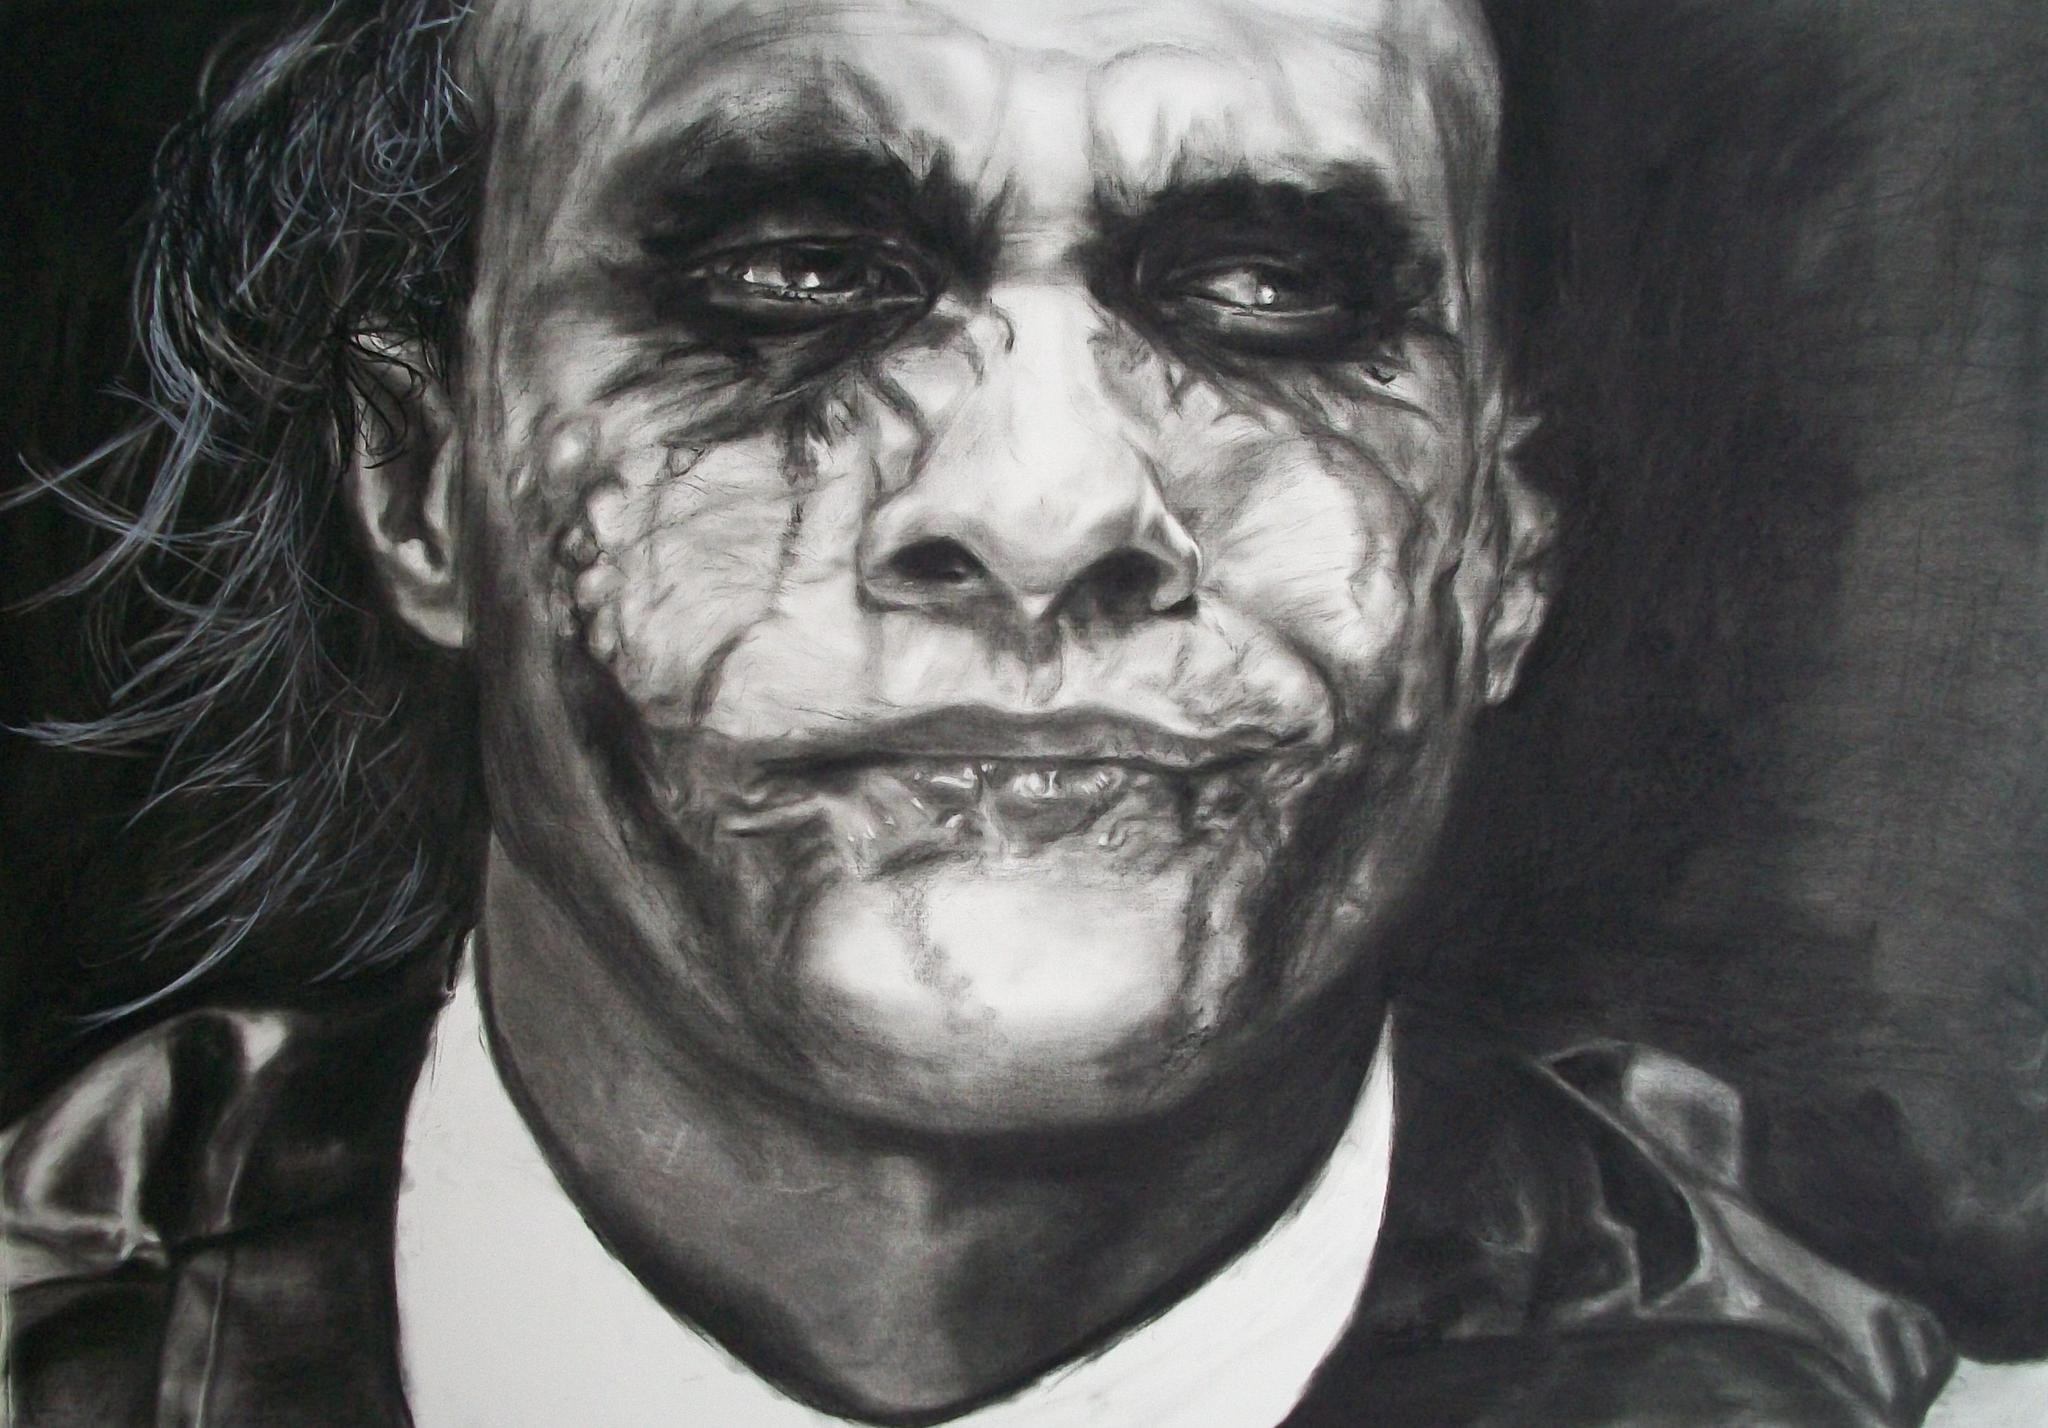 retrato the joker